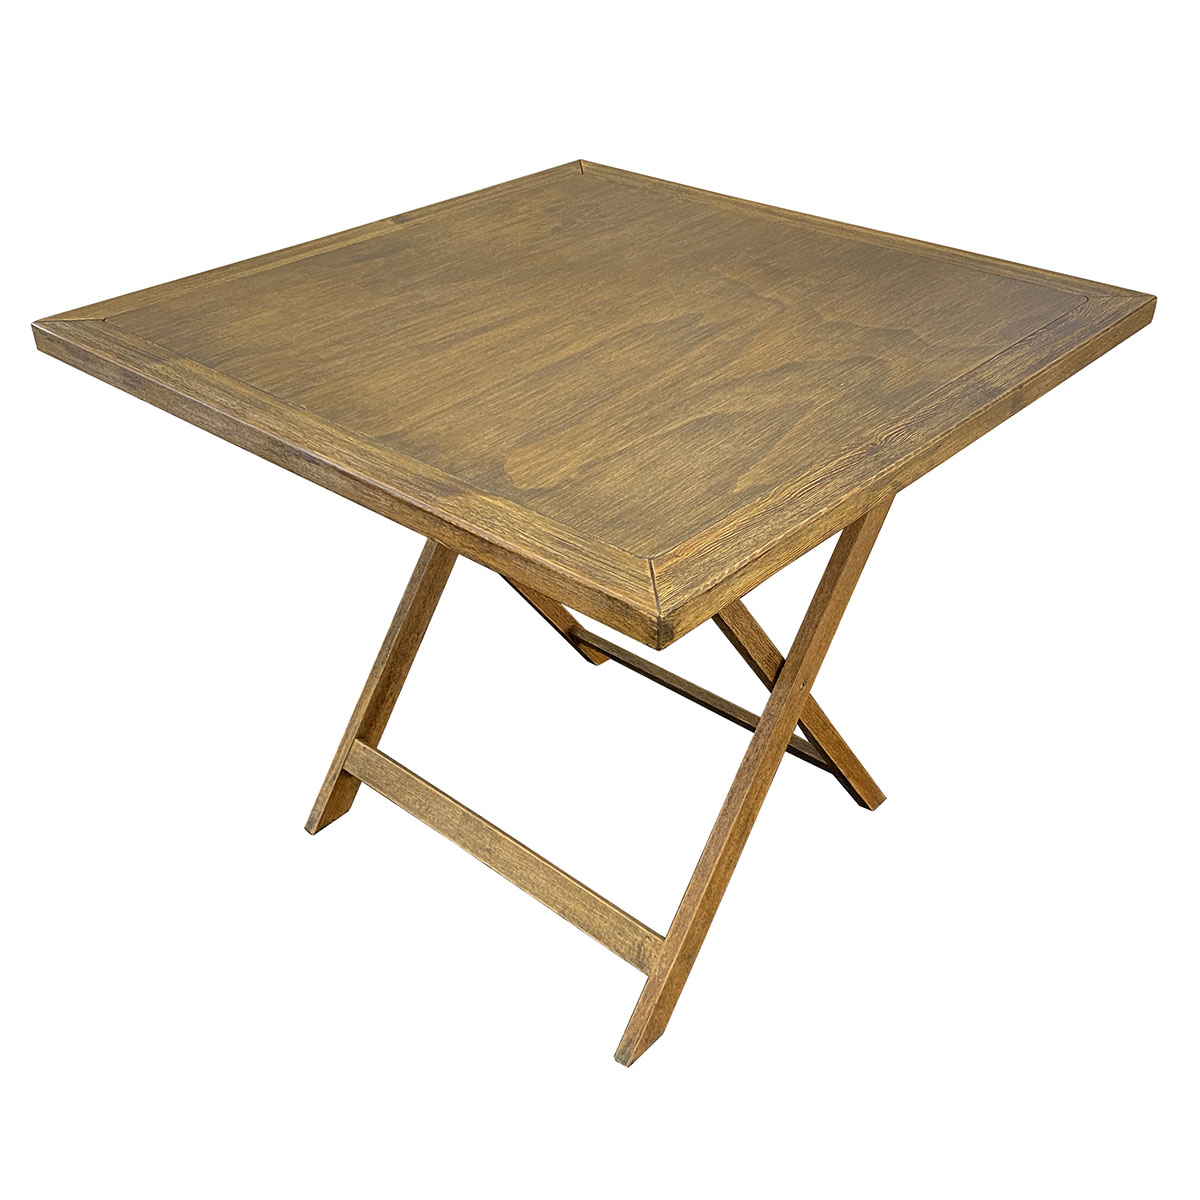 "Farm Table 36"" Square"